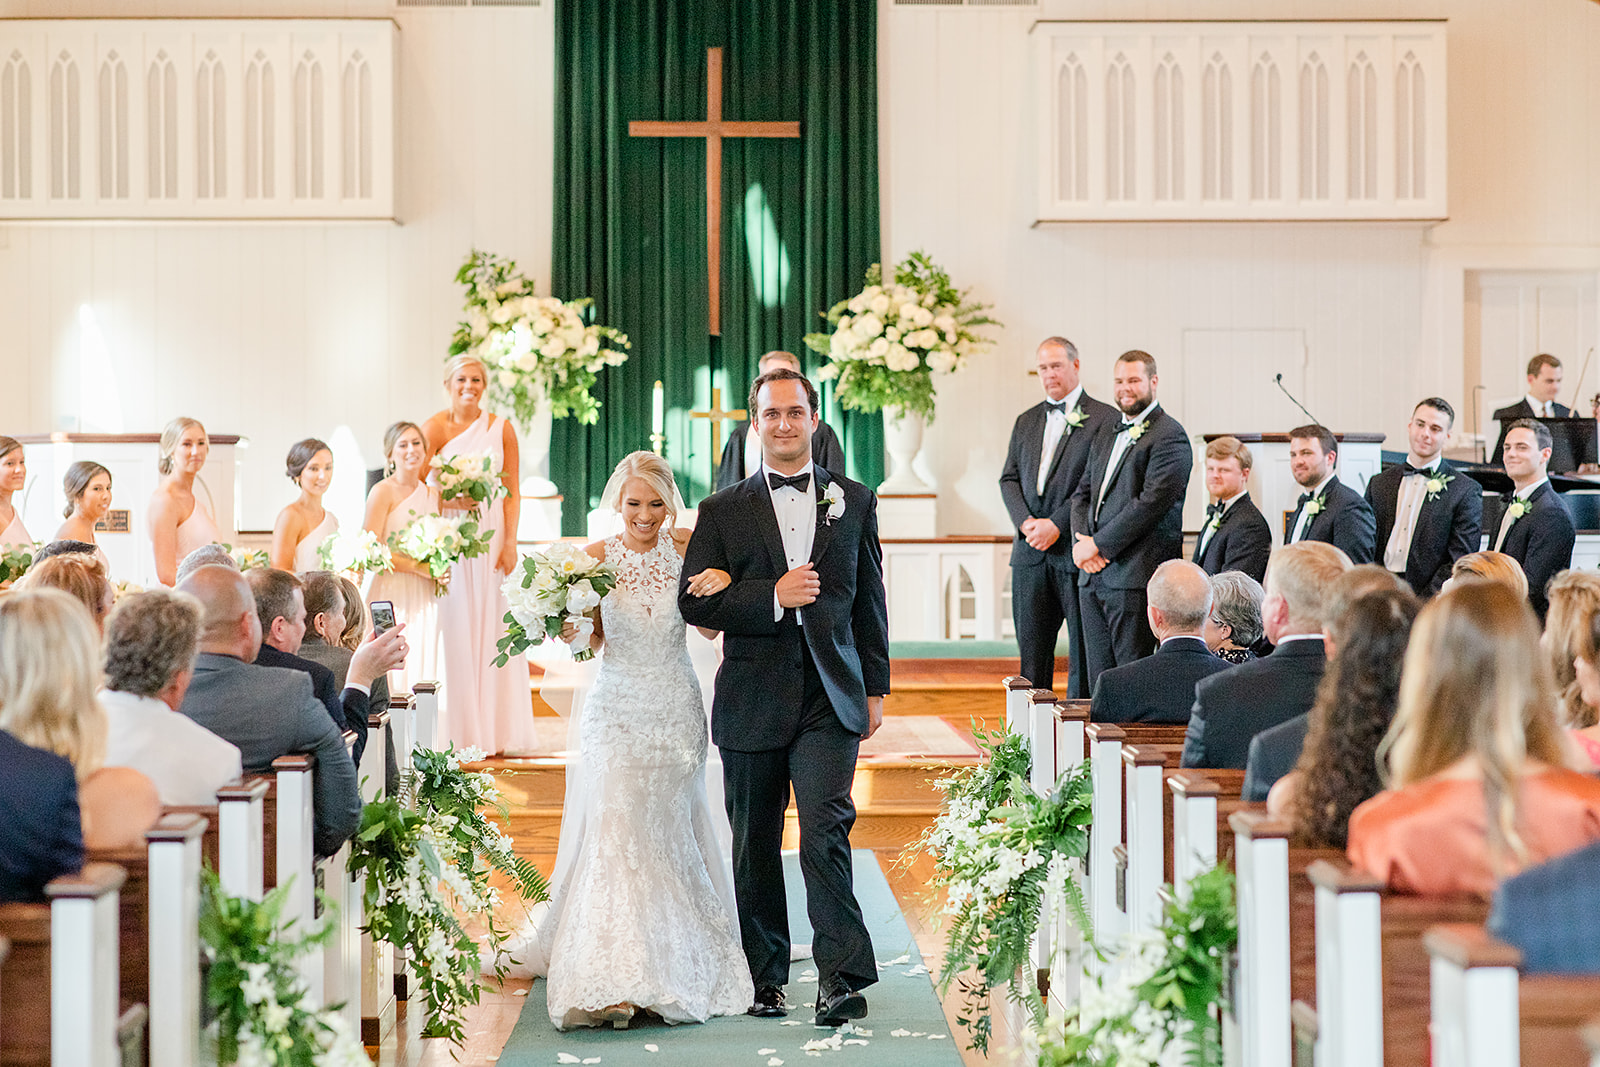 Blush-Black-Tie-Wedding-at-the-Grand-Hotel-in-Point-Clear-Alabama-Anna-Filly-Photography-Cross-Wedding-Ceremony_+_Family_2--86.jpg